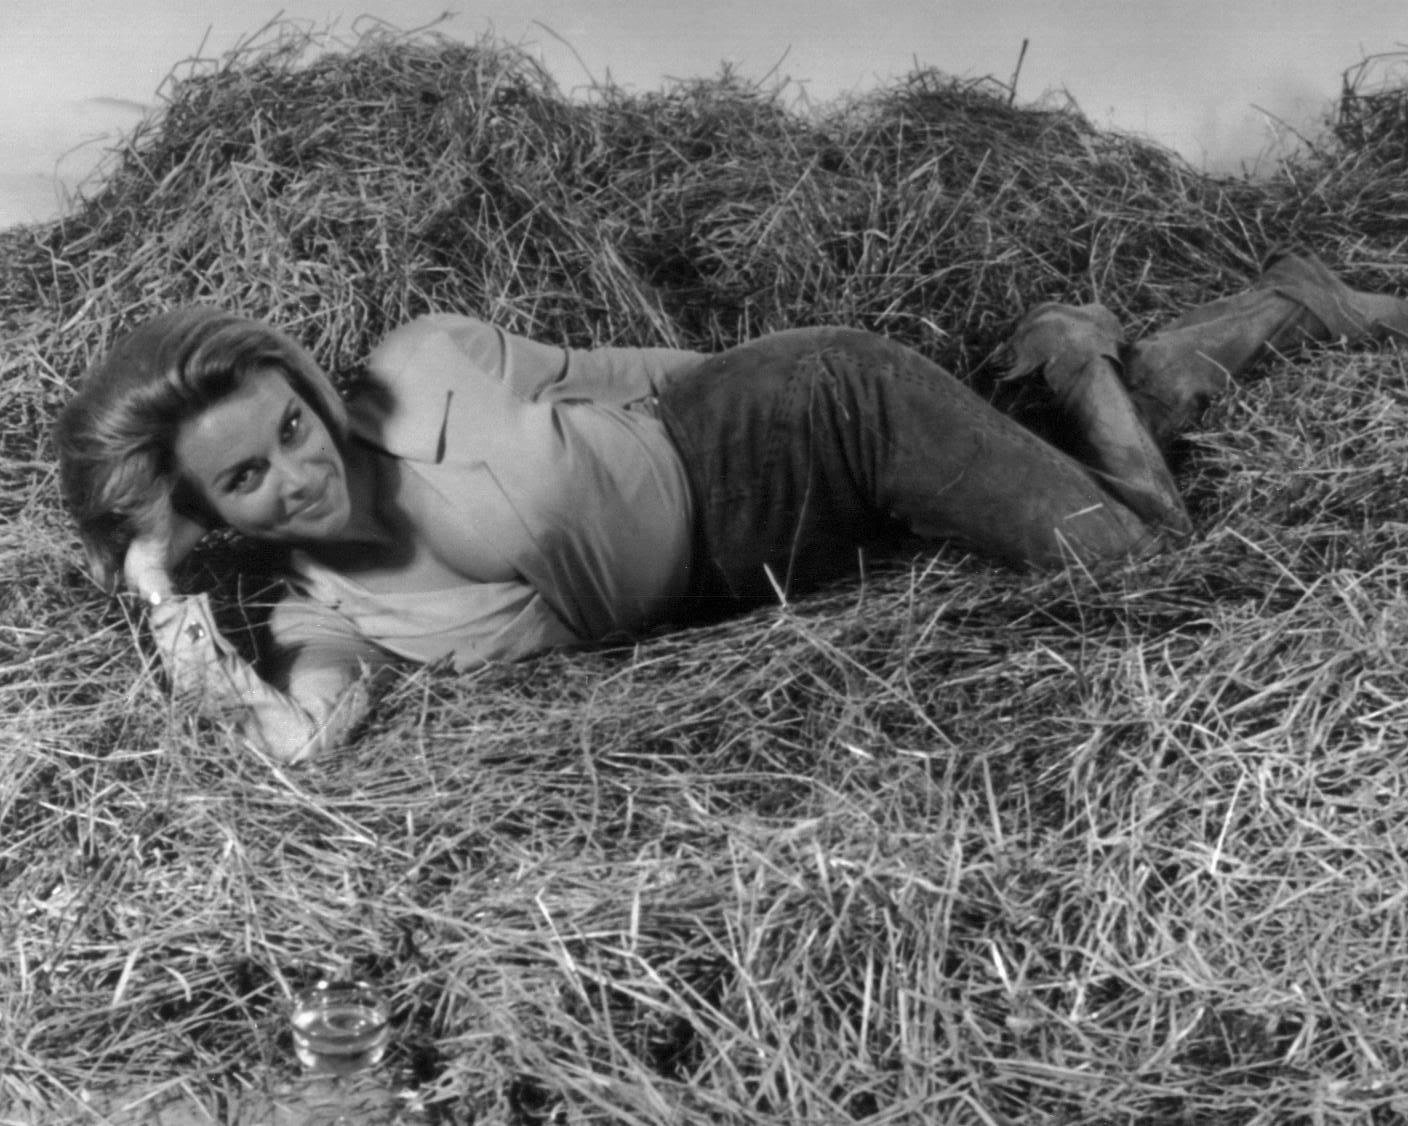 """HONOR BLACKMAN AS """"PUSSY GALORE"""" IN """"GOLDFINGER"""" - 8X10 PUBLICITY PHOTO (DA-549)"""